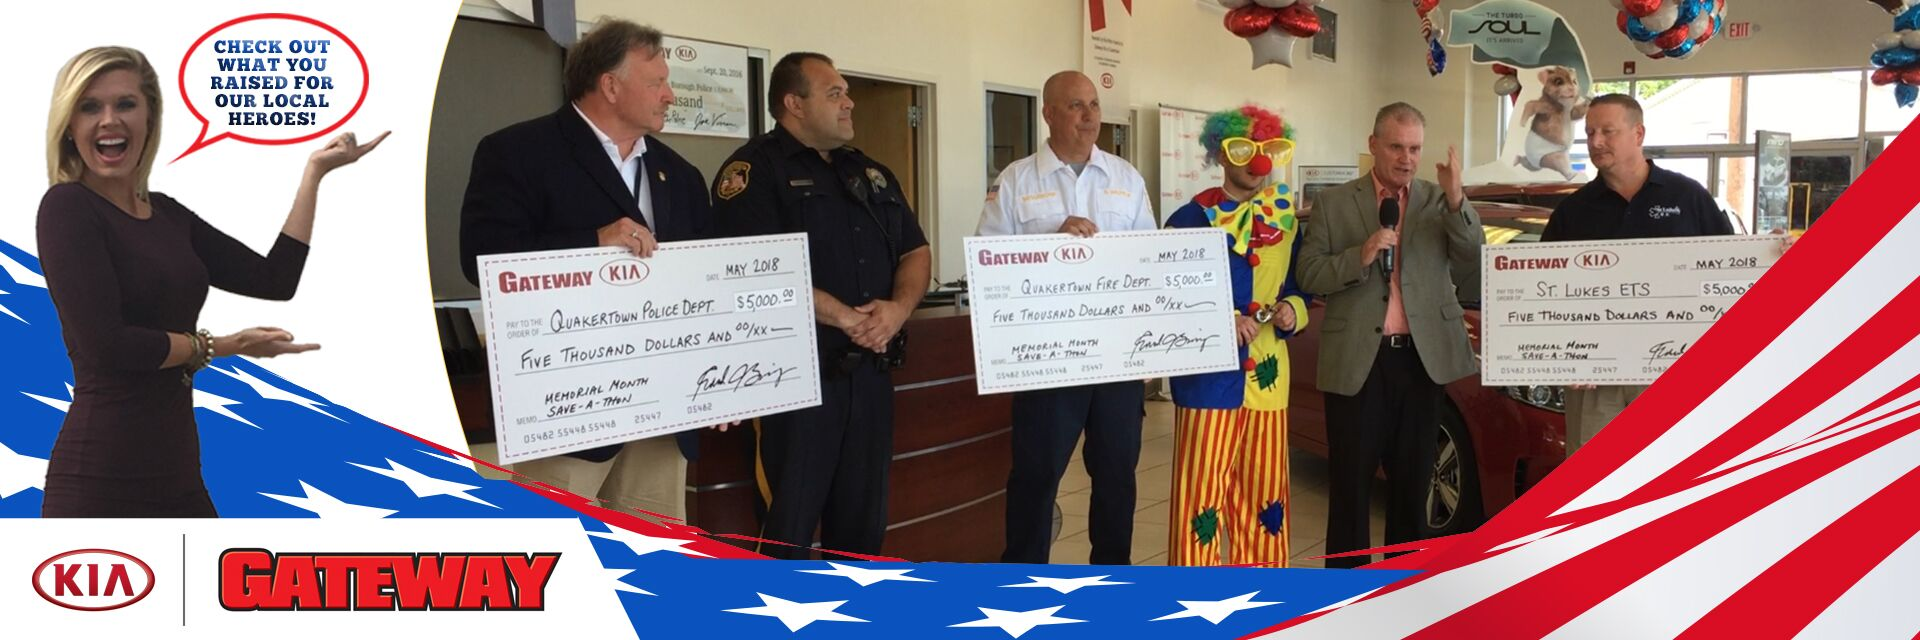 Proud to Support our local Police, Fire and EMS Depts